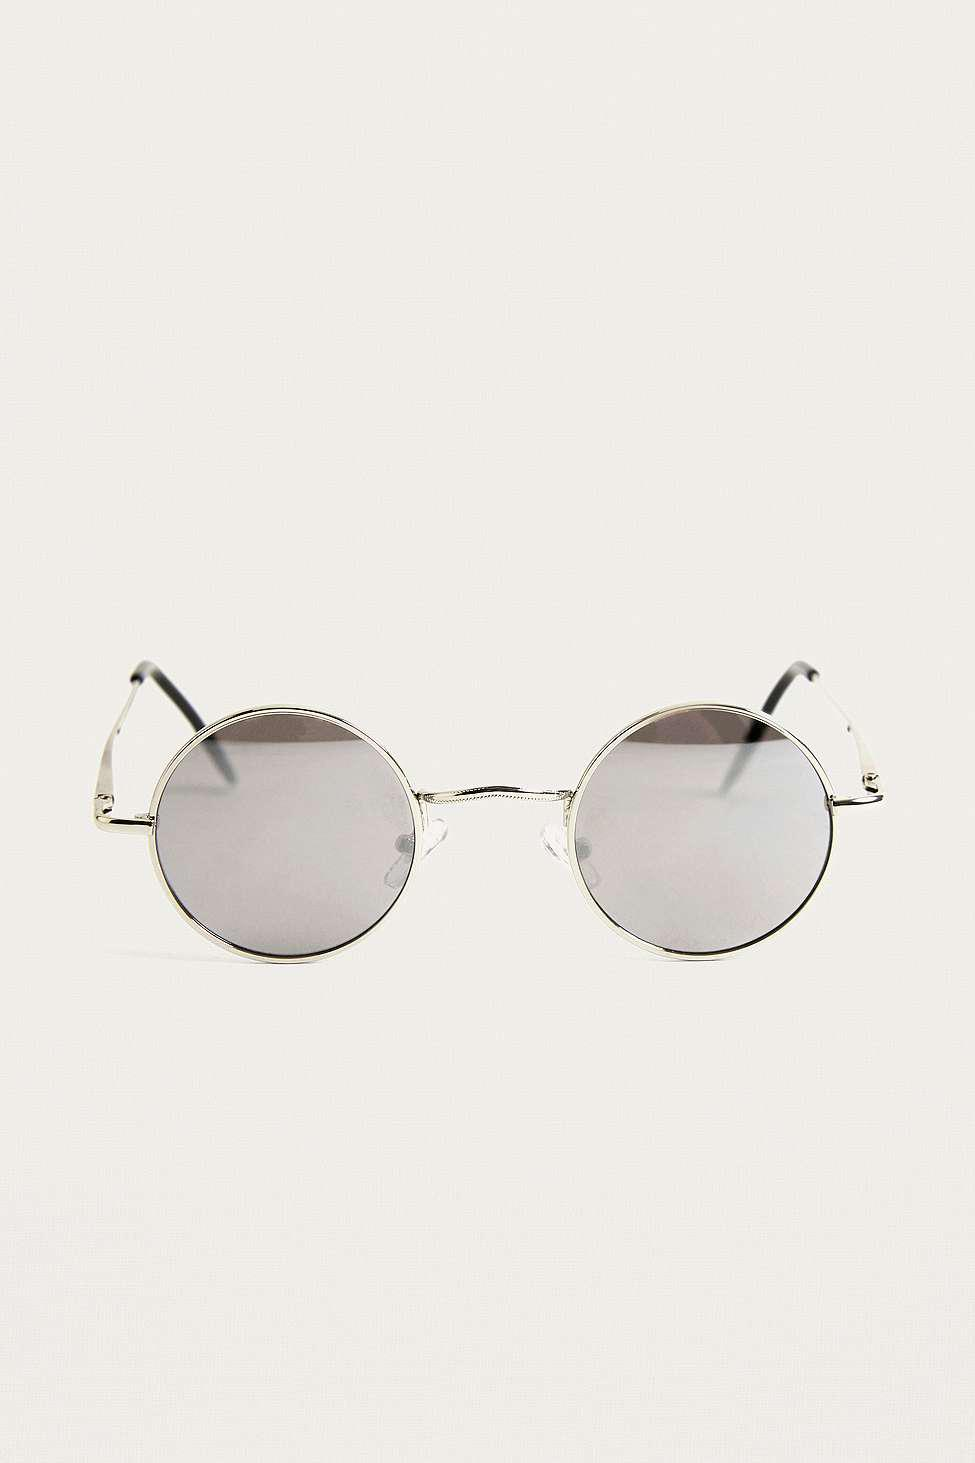 4d8b19cea9902 Urban Outfitters Super Mini Round Sunglasses - Womens All in ...